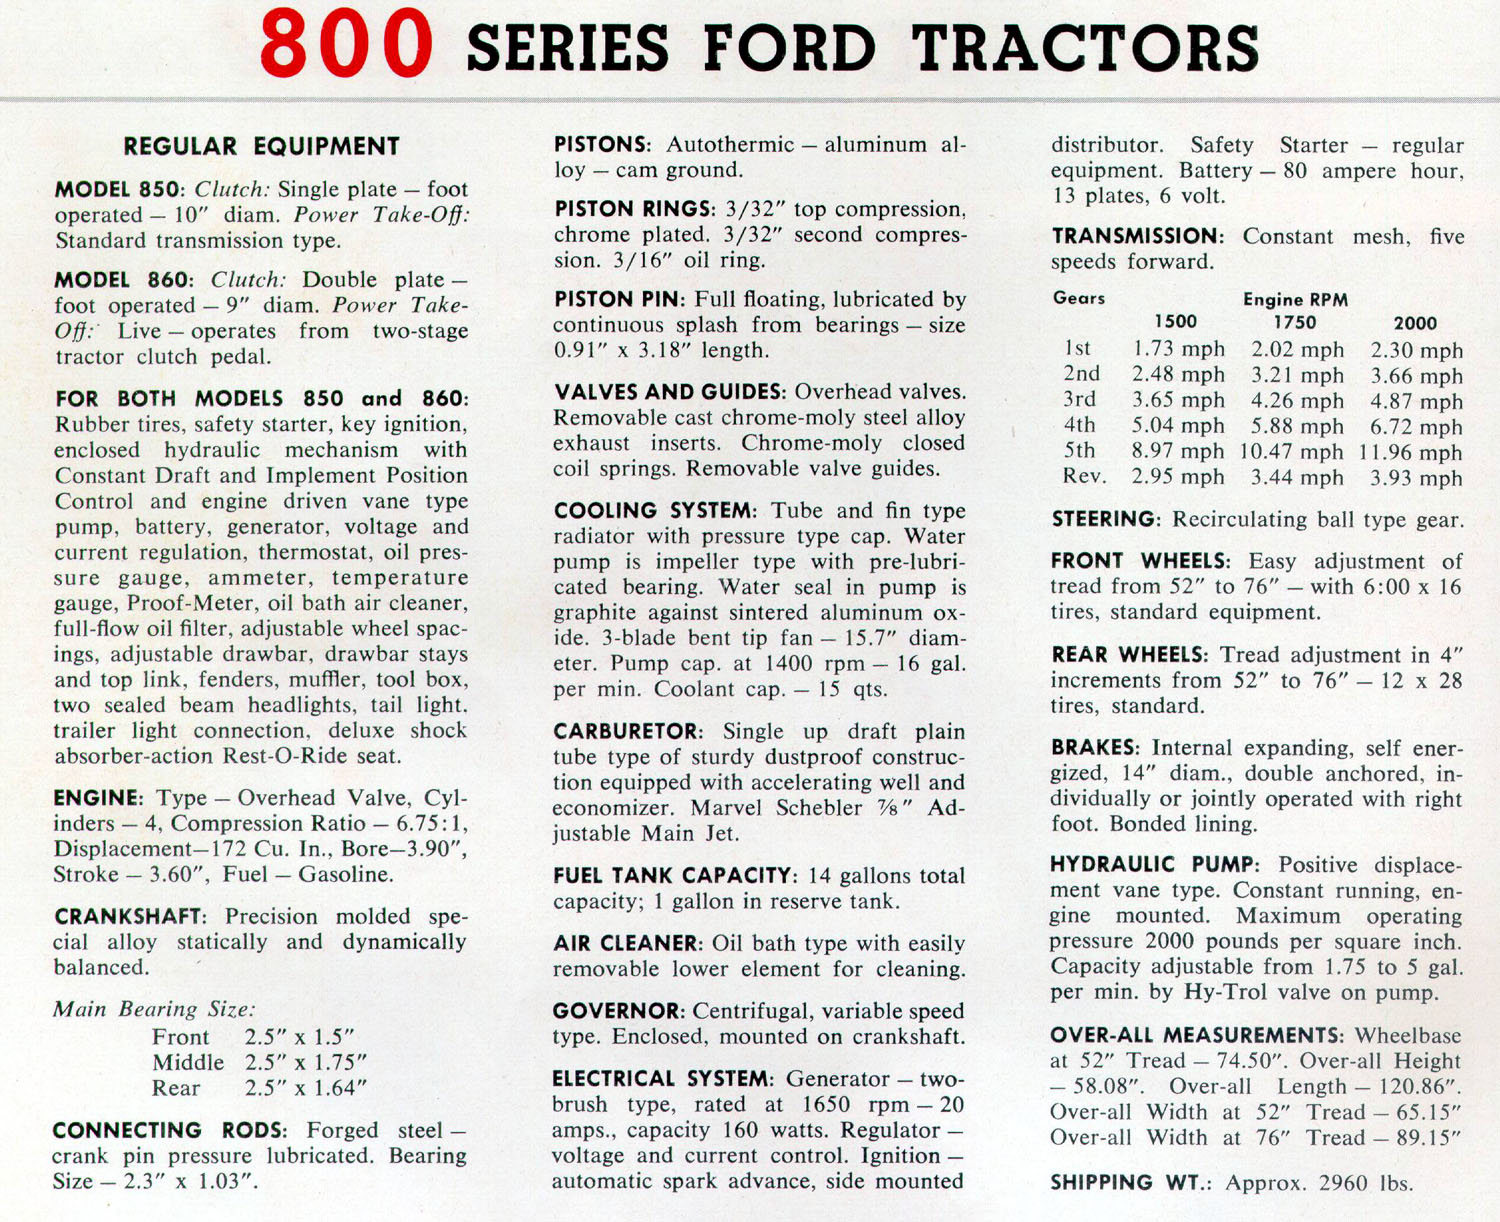 Ford 800 Tractor Information : Ford tractor horsepower